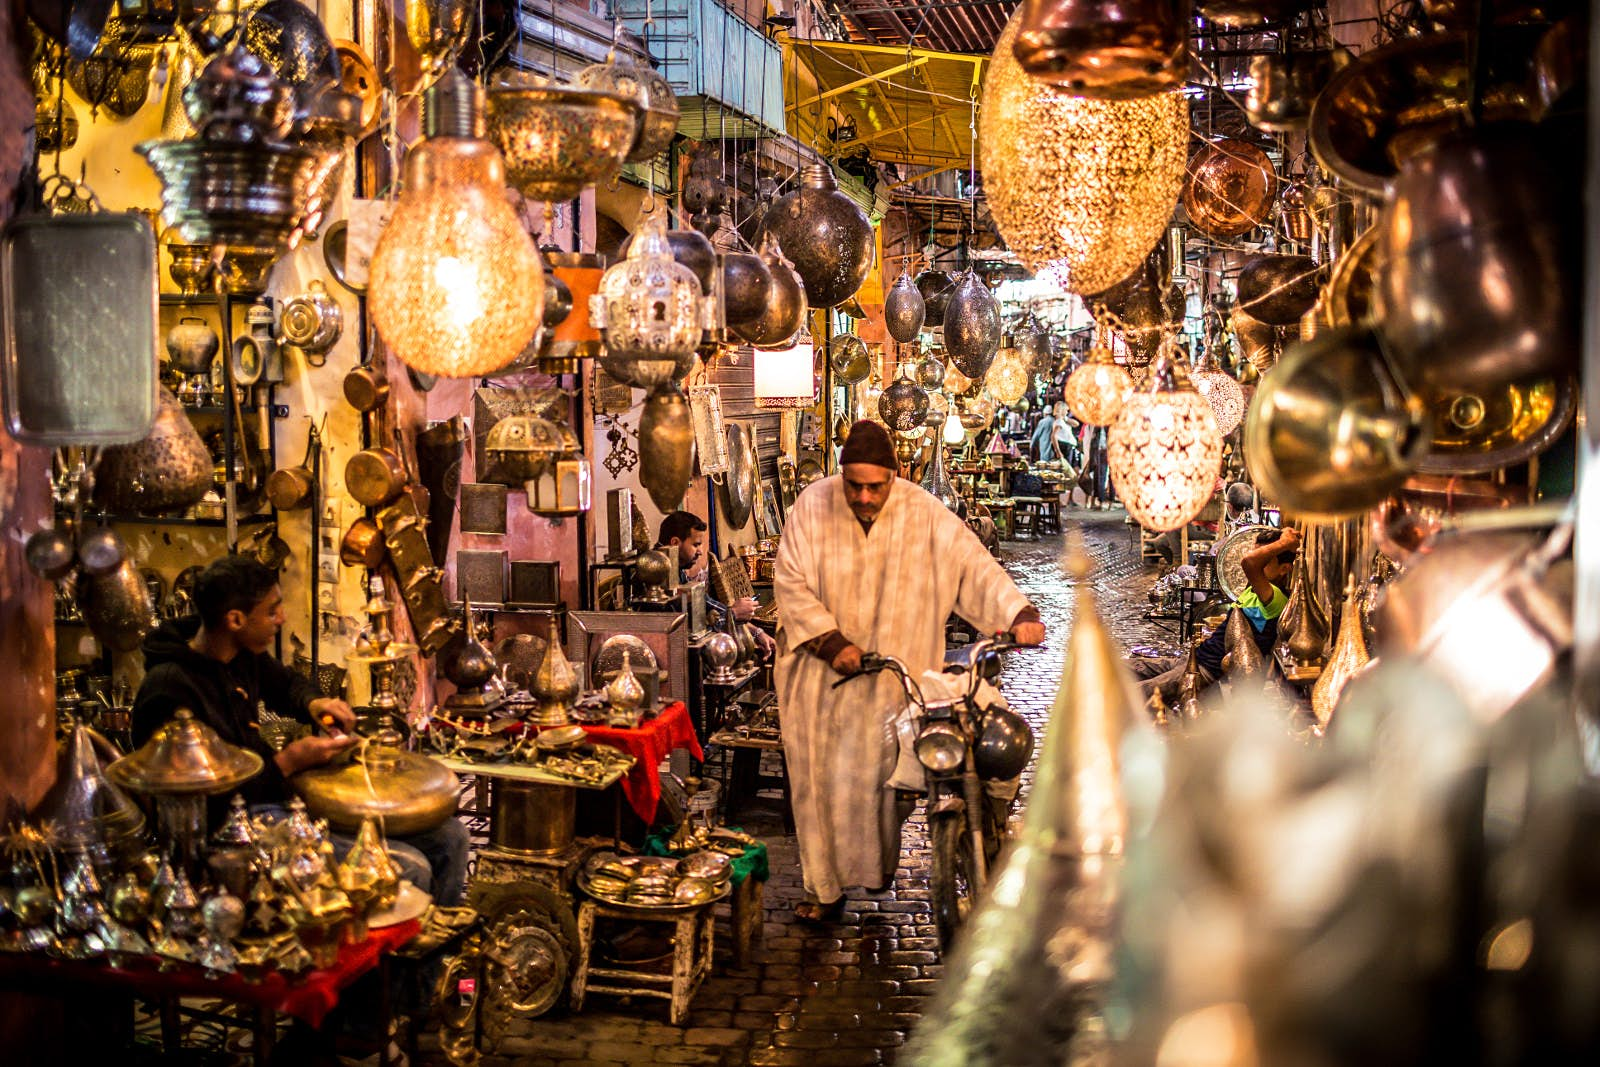 Lantern lights for sale in the old market in Essaouira, Morocco. Image by Gavin Quirke / Getty Images